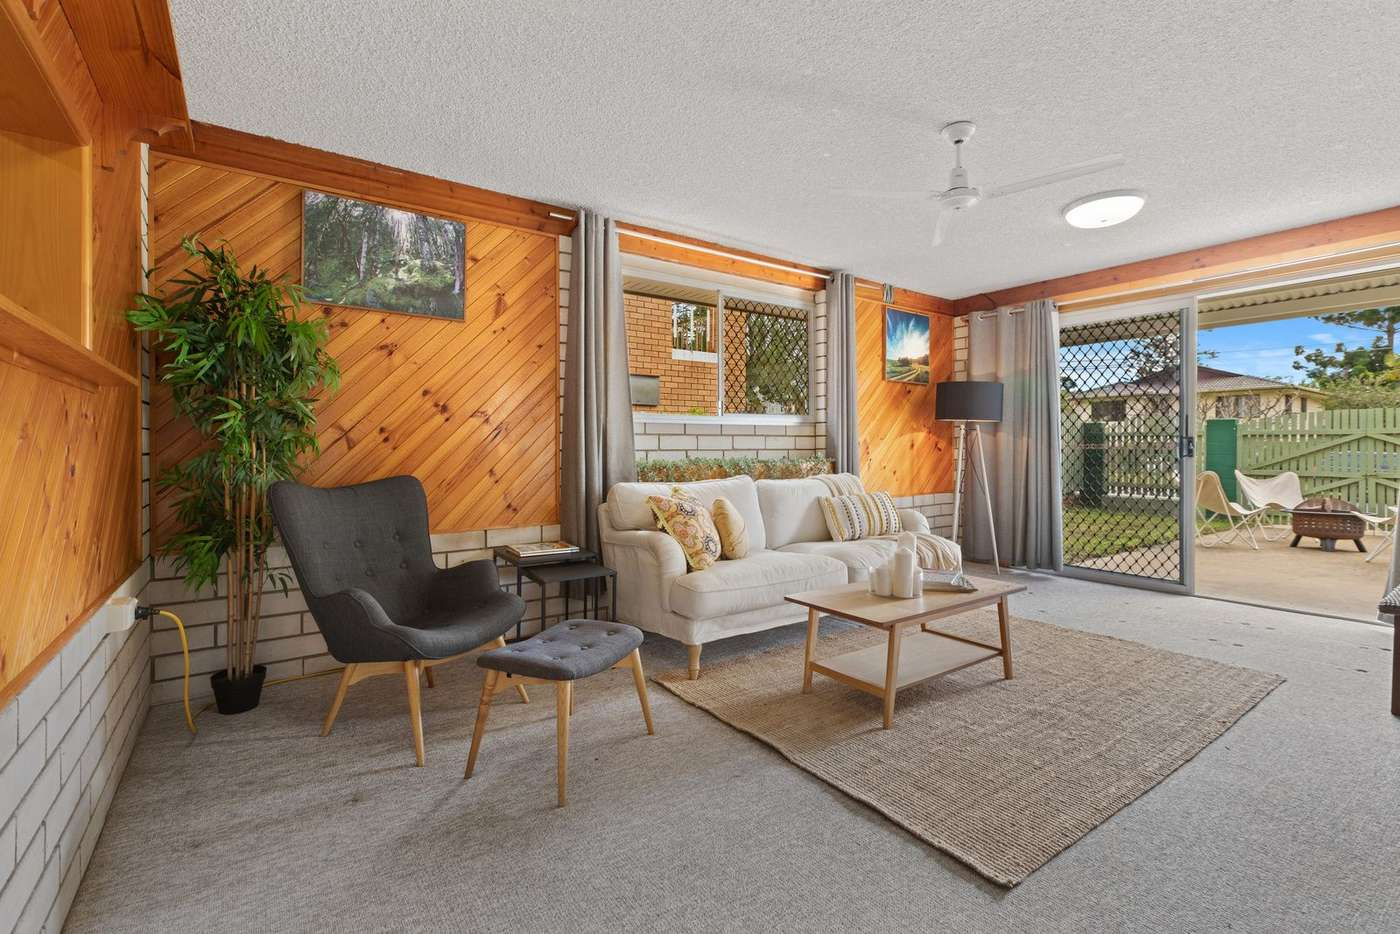 Main view of Homely house listing, 115 Highgate Street, Coopers Plains QLD 4108